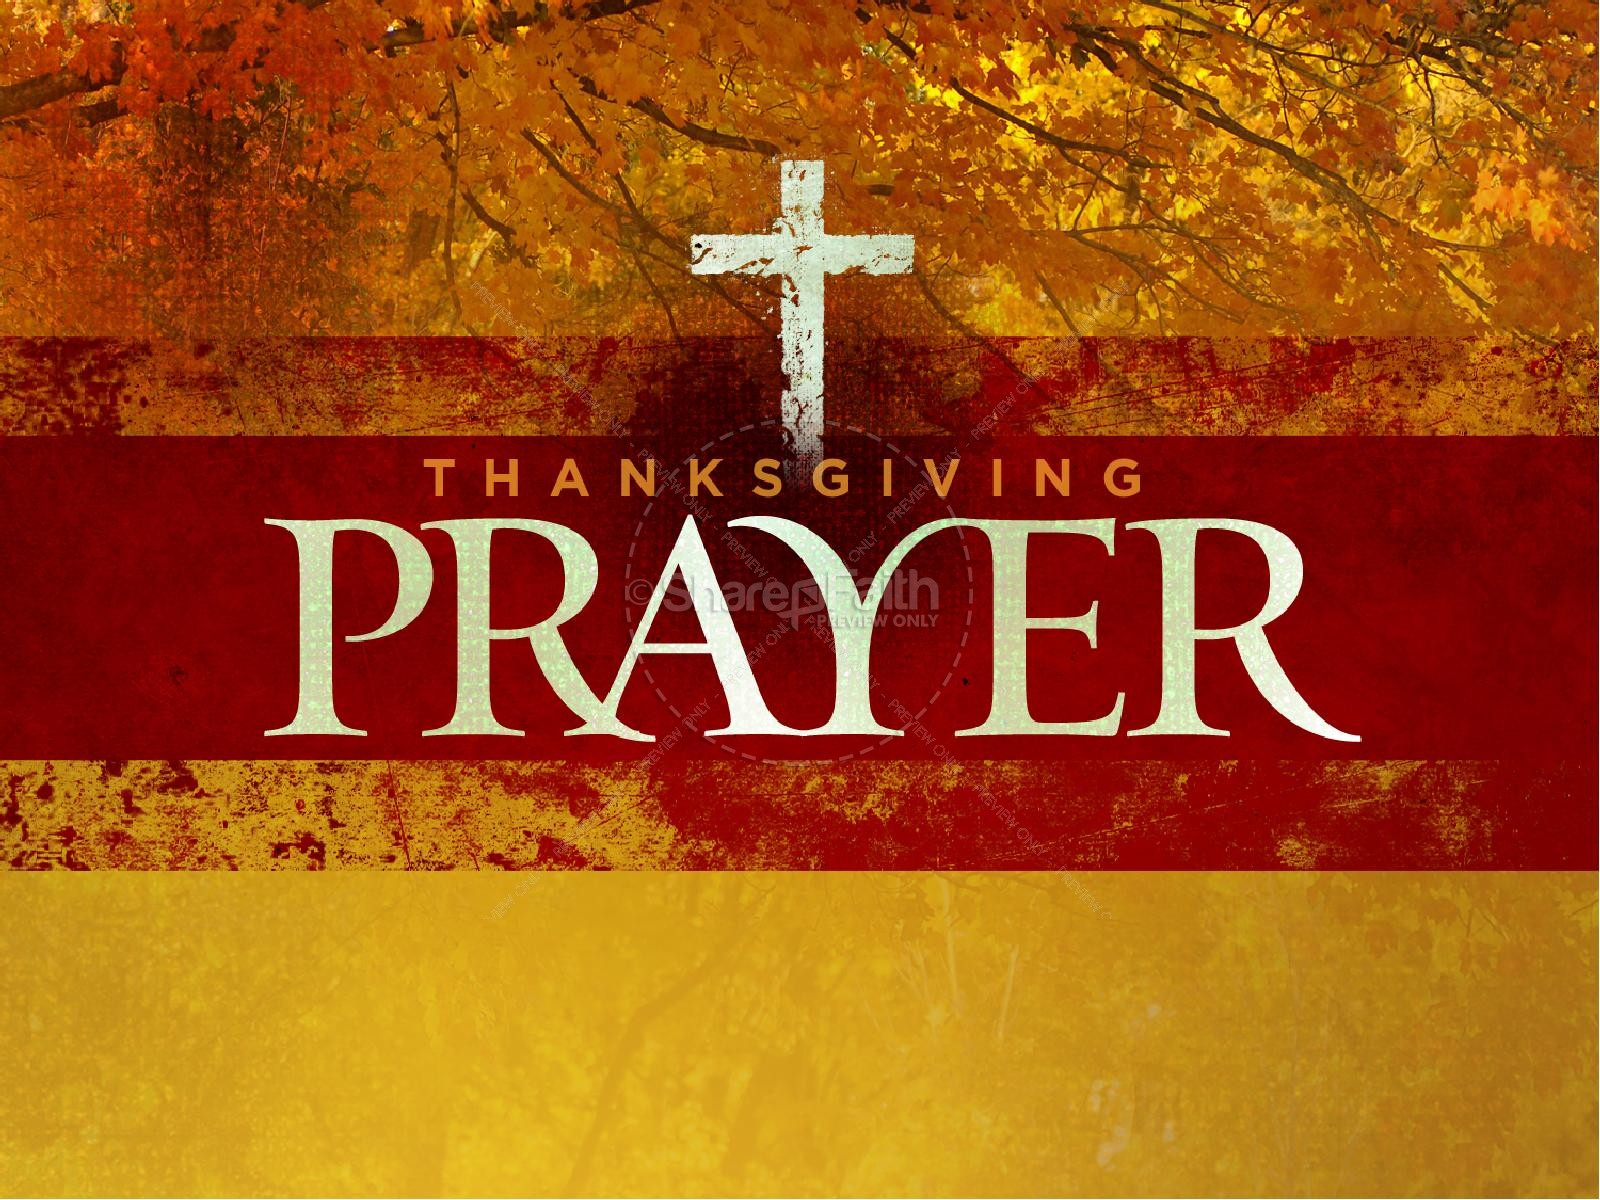 Thanksgiving Prayer Sermon PowerPoint | slide 2